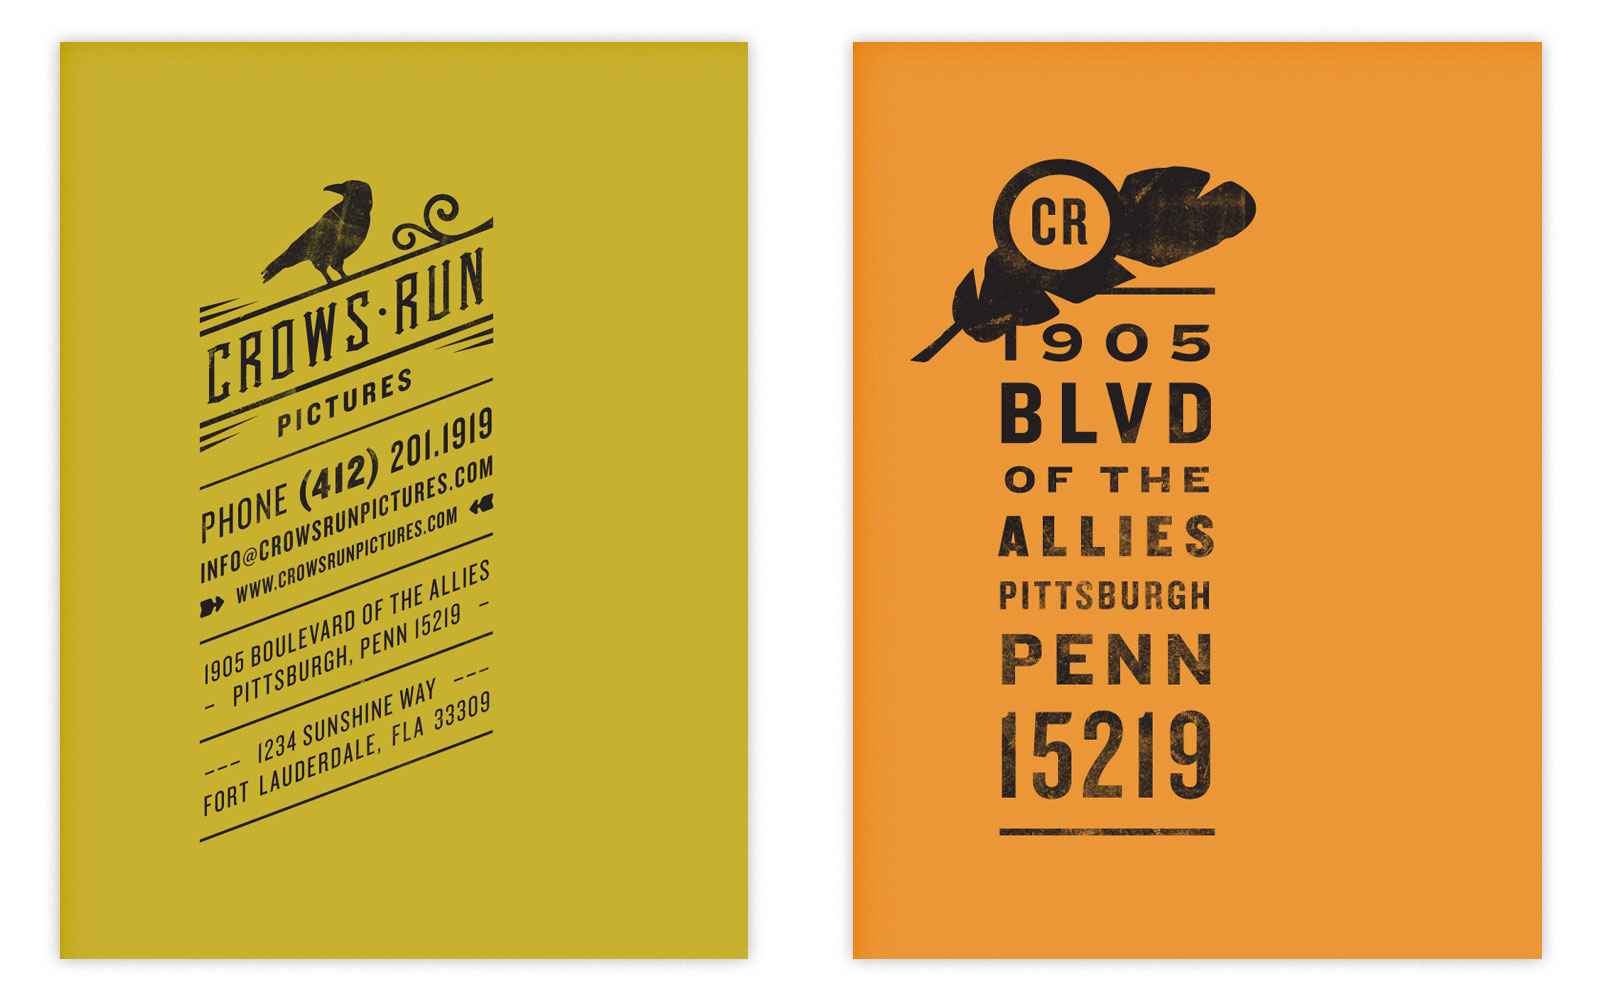 Crowsrun stationery detail